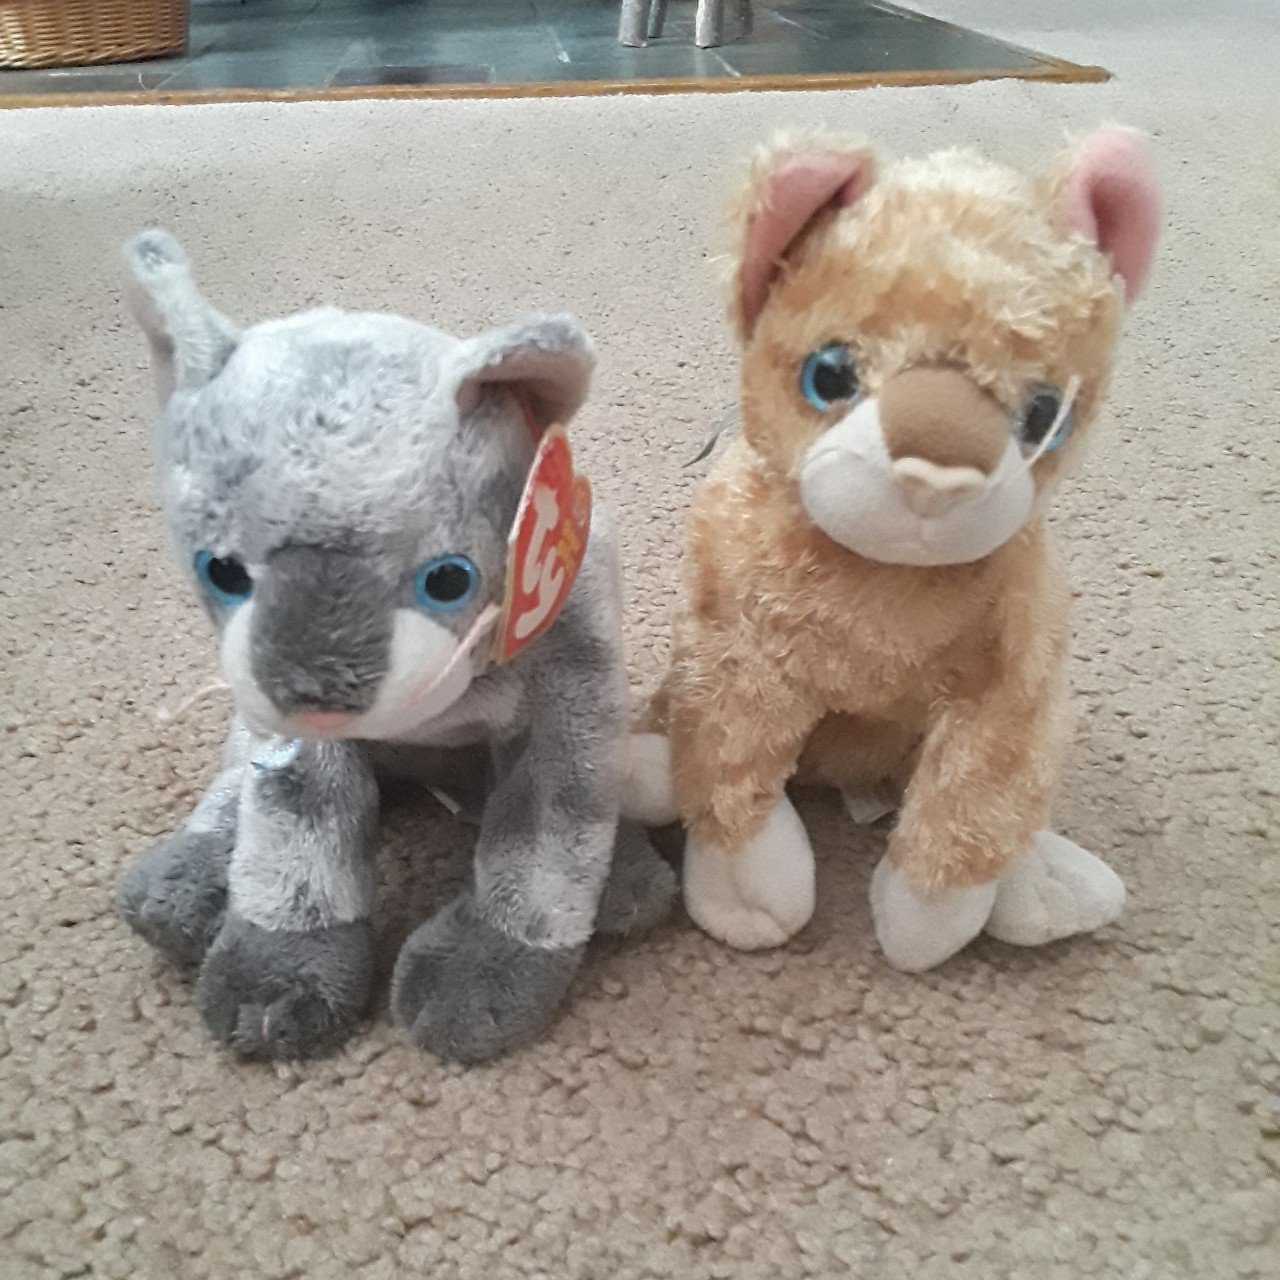 14c758c936f A set of two cat beanie babies. Frisco and Mattie. Mattie a - Depop